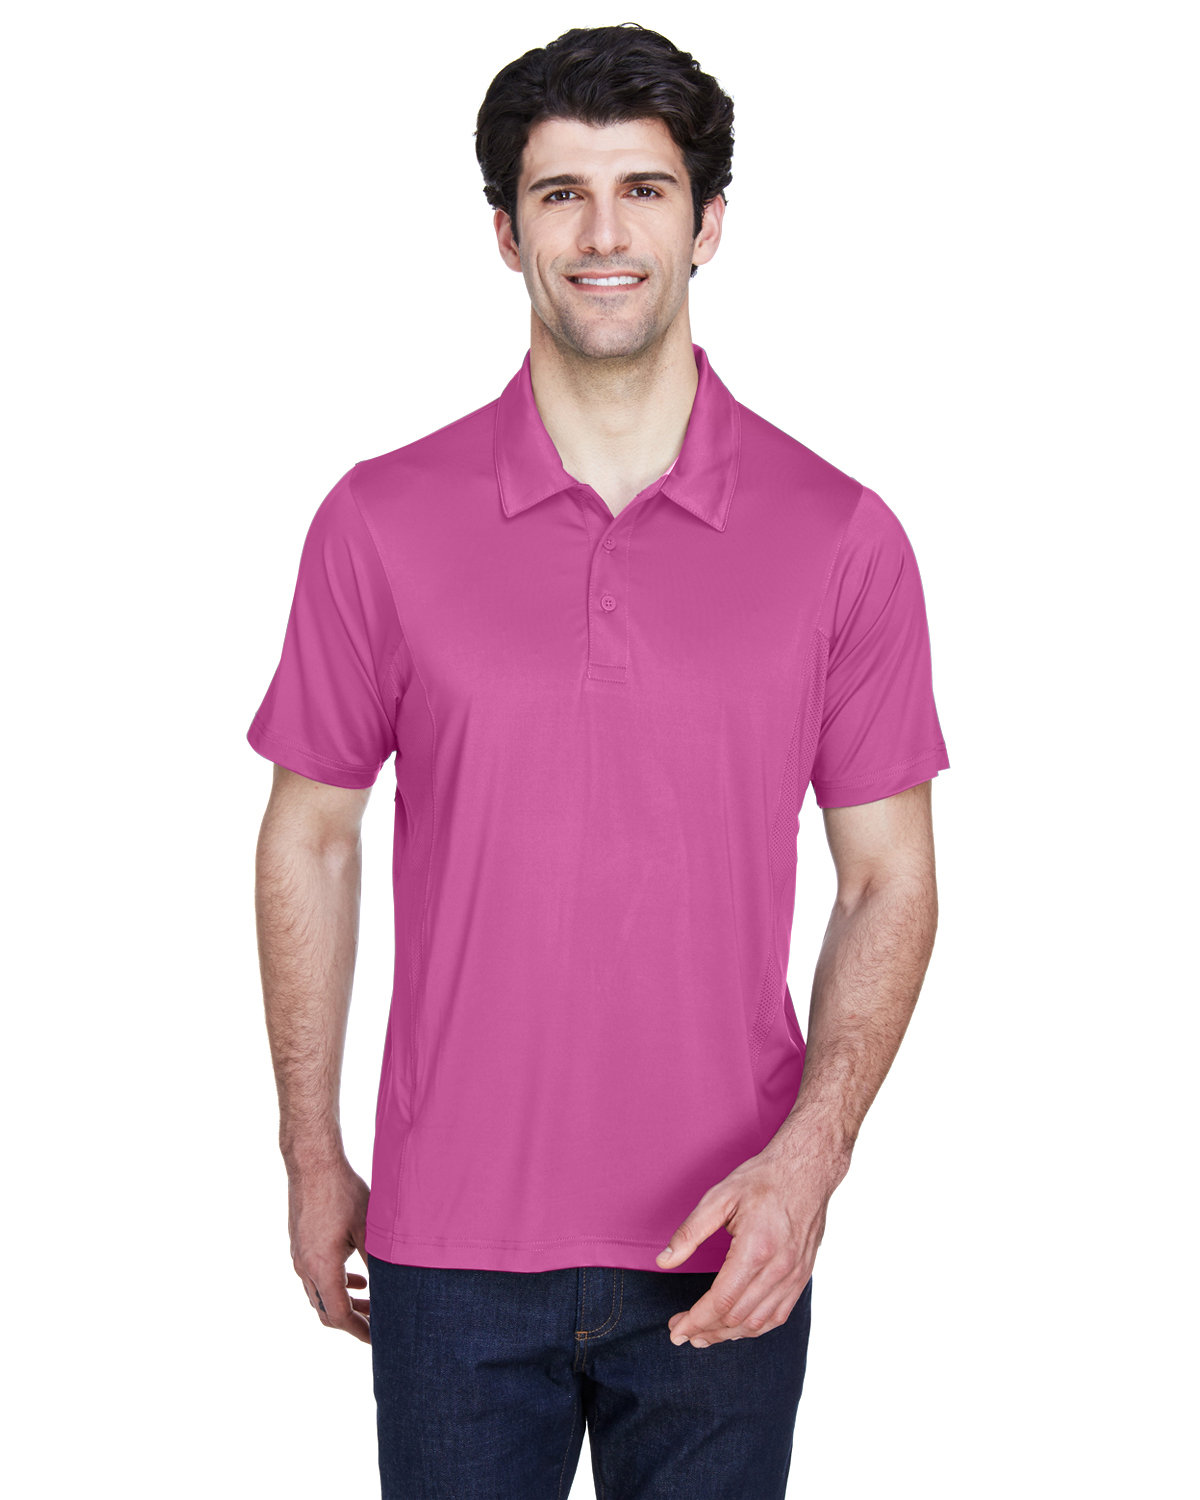 Team 365 Men's Charger Performance Polo SPORT CHRTY PINK